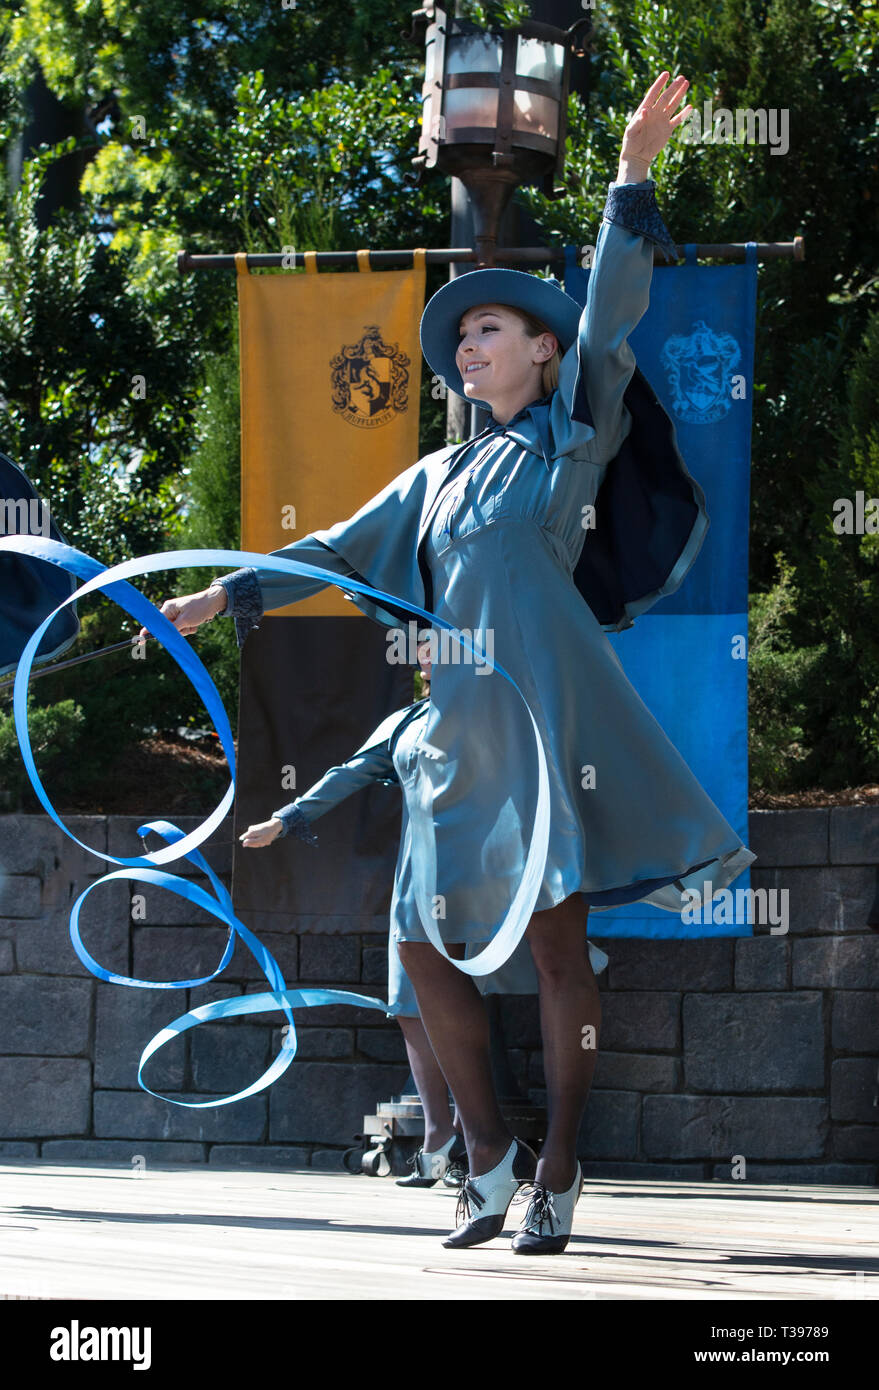 Beauxbaton ribbon dancer, on stage during live performance, with twirling blue ribbon, Wizarding World of Harry Potter, Orlando, Florida, USA. Stock Photo